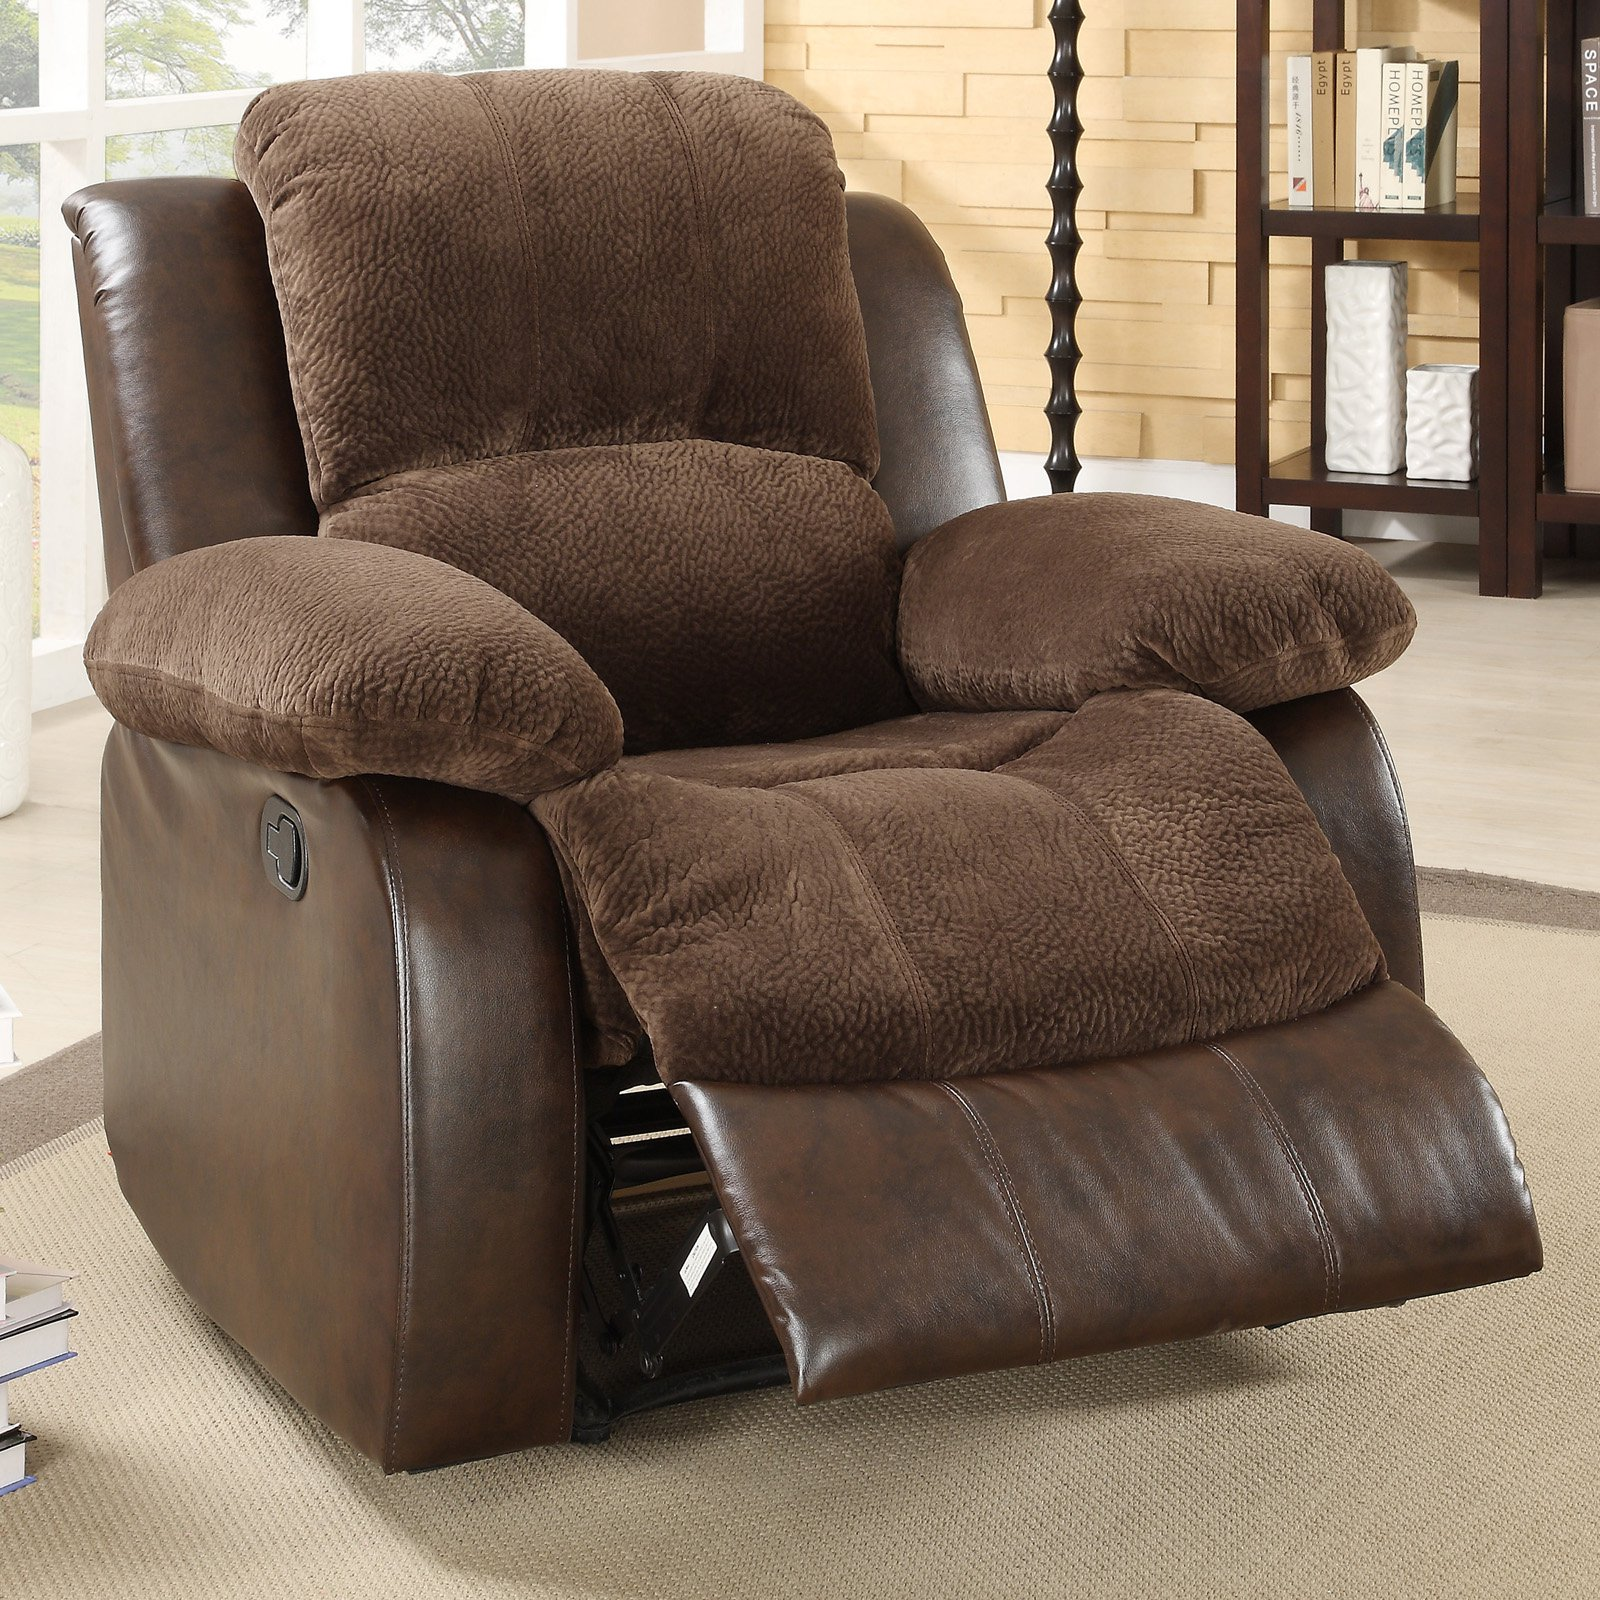 Cozy giant recliner with footboard and thic wool slip cover & Oversized Recliner Chair Product Selections | HomesFeed islam-shia.org